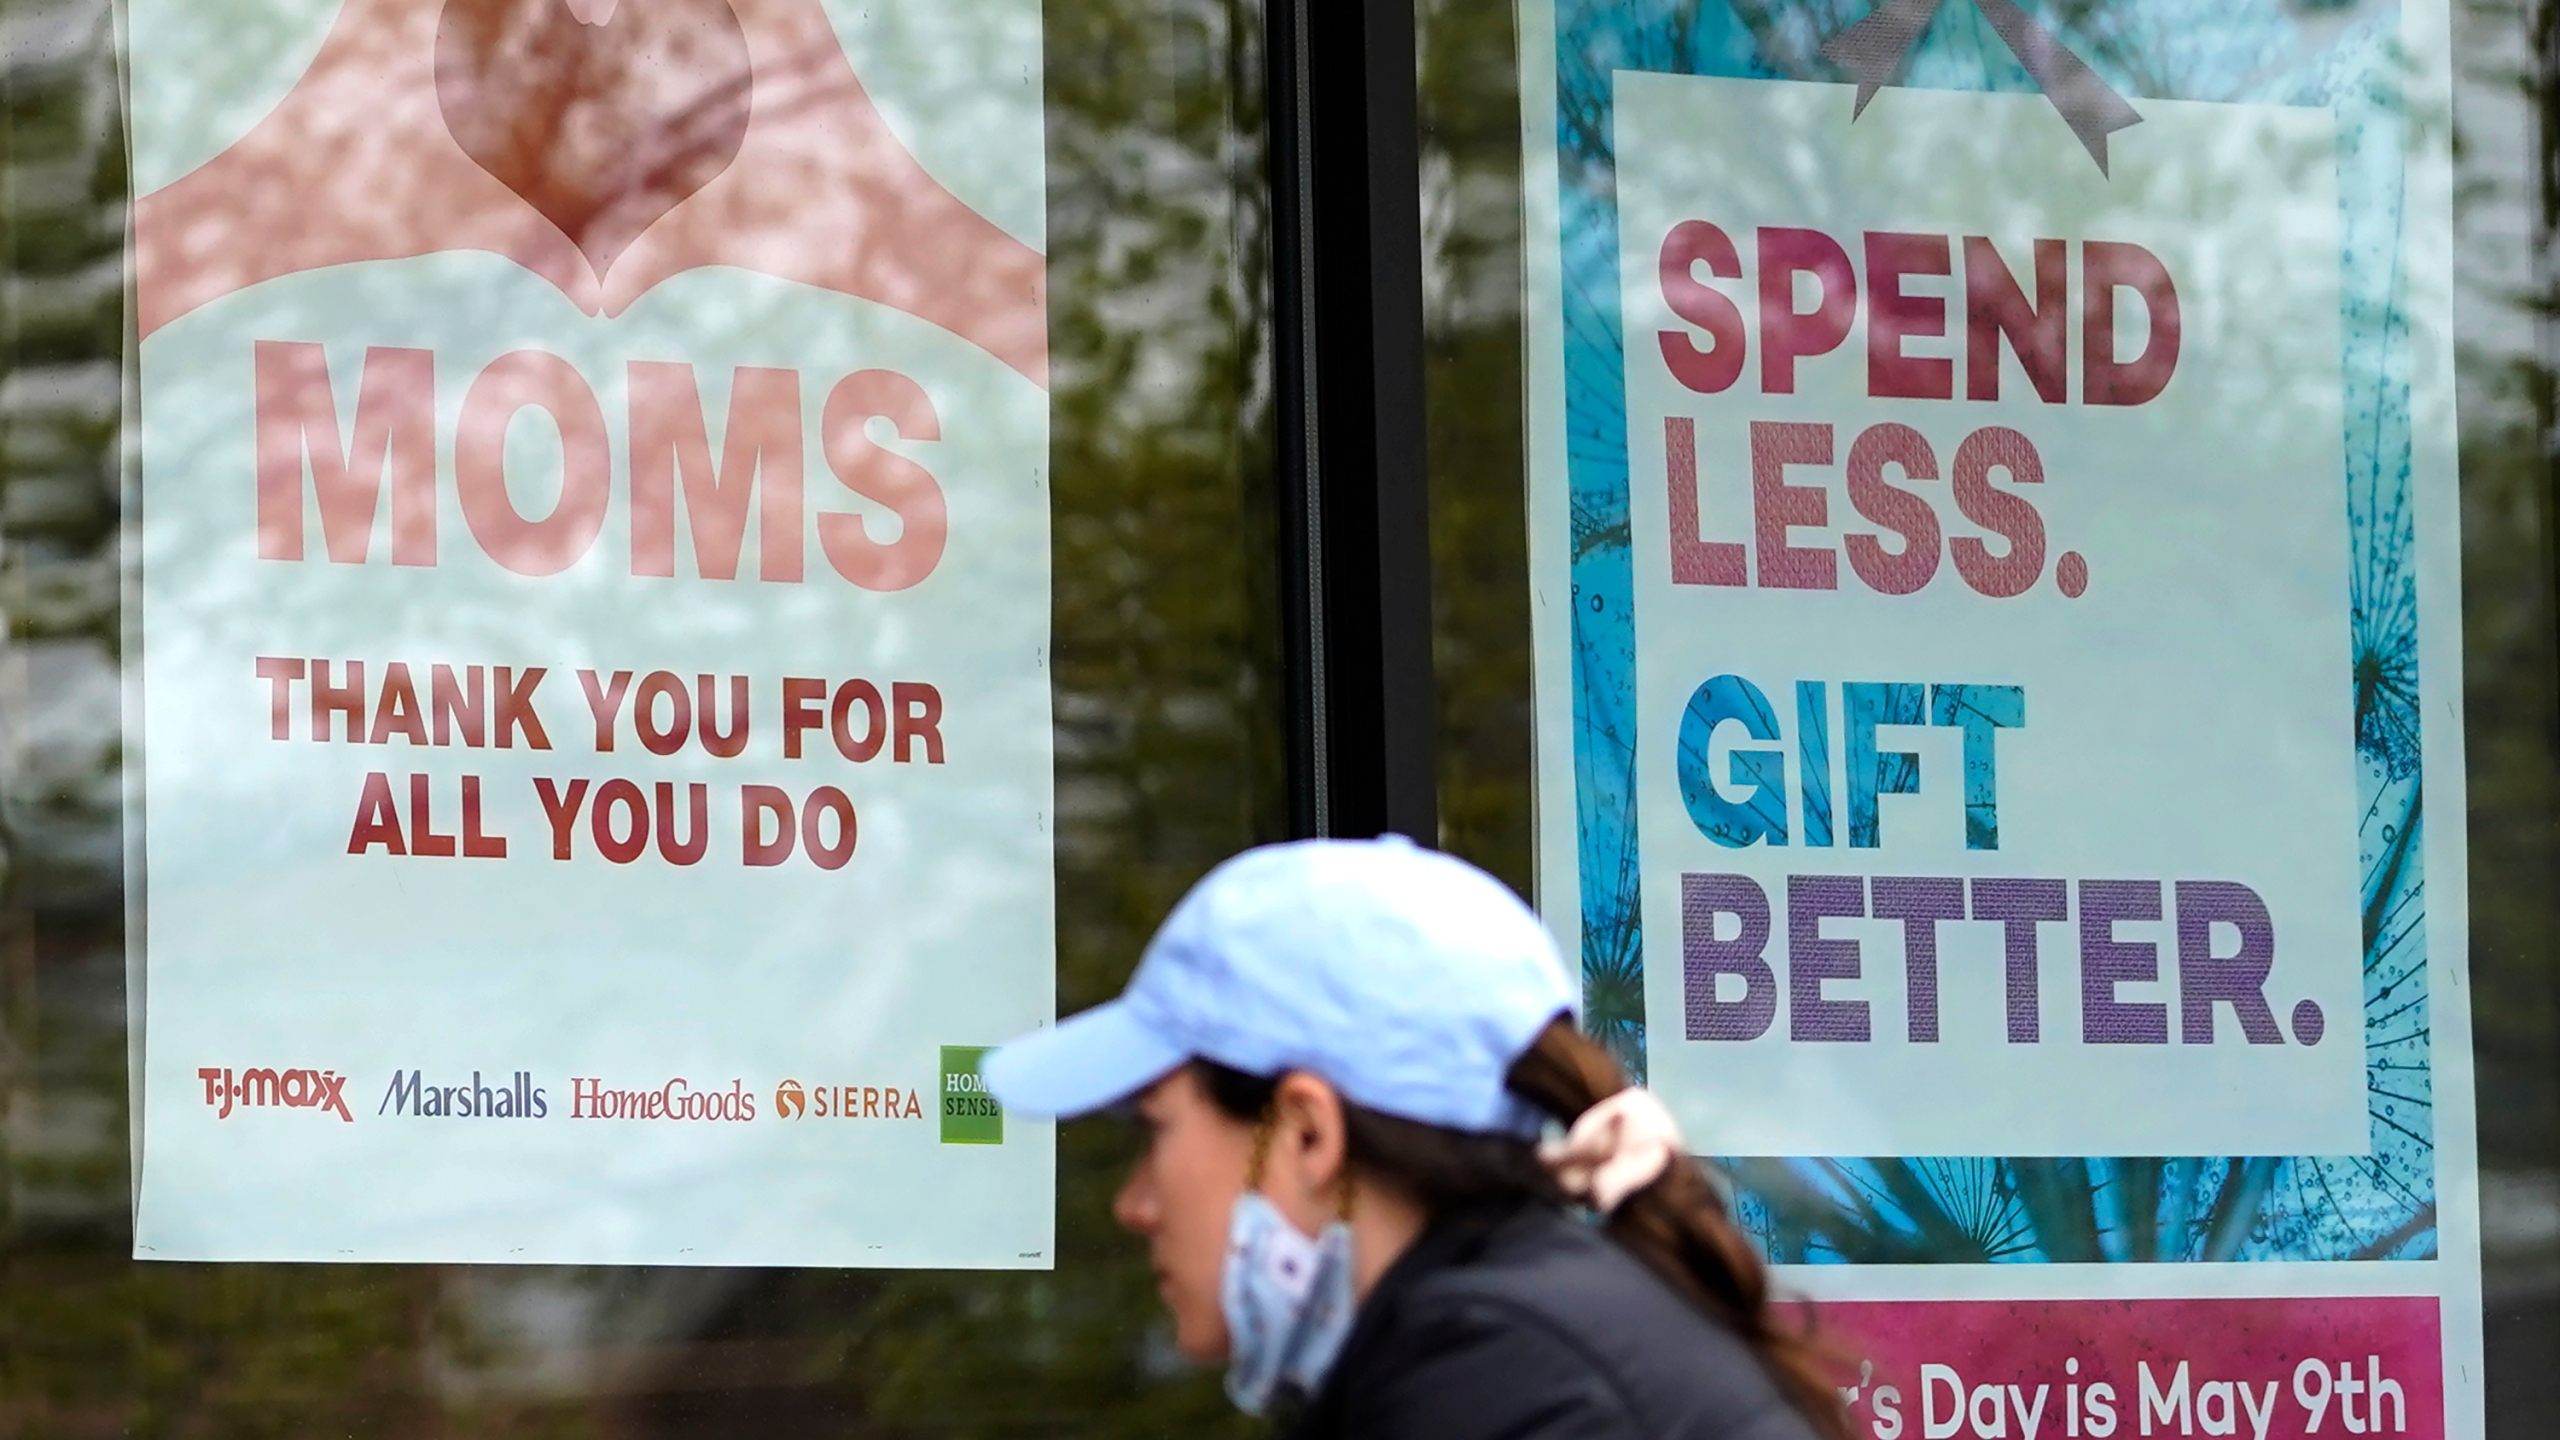 Signs about Mother's Day are displayed at a home decor department store in Northbrook, Ill., Saturday, May 8, 2021. (AP Photo/Nam Y. Huh)